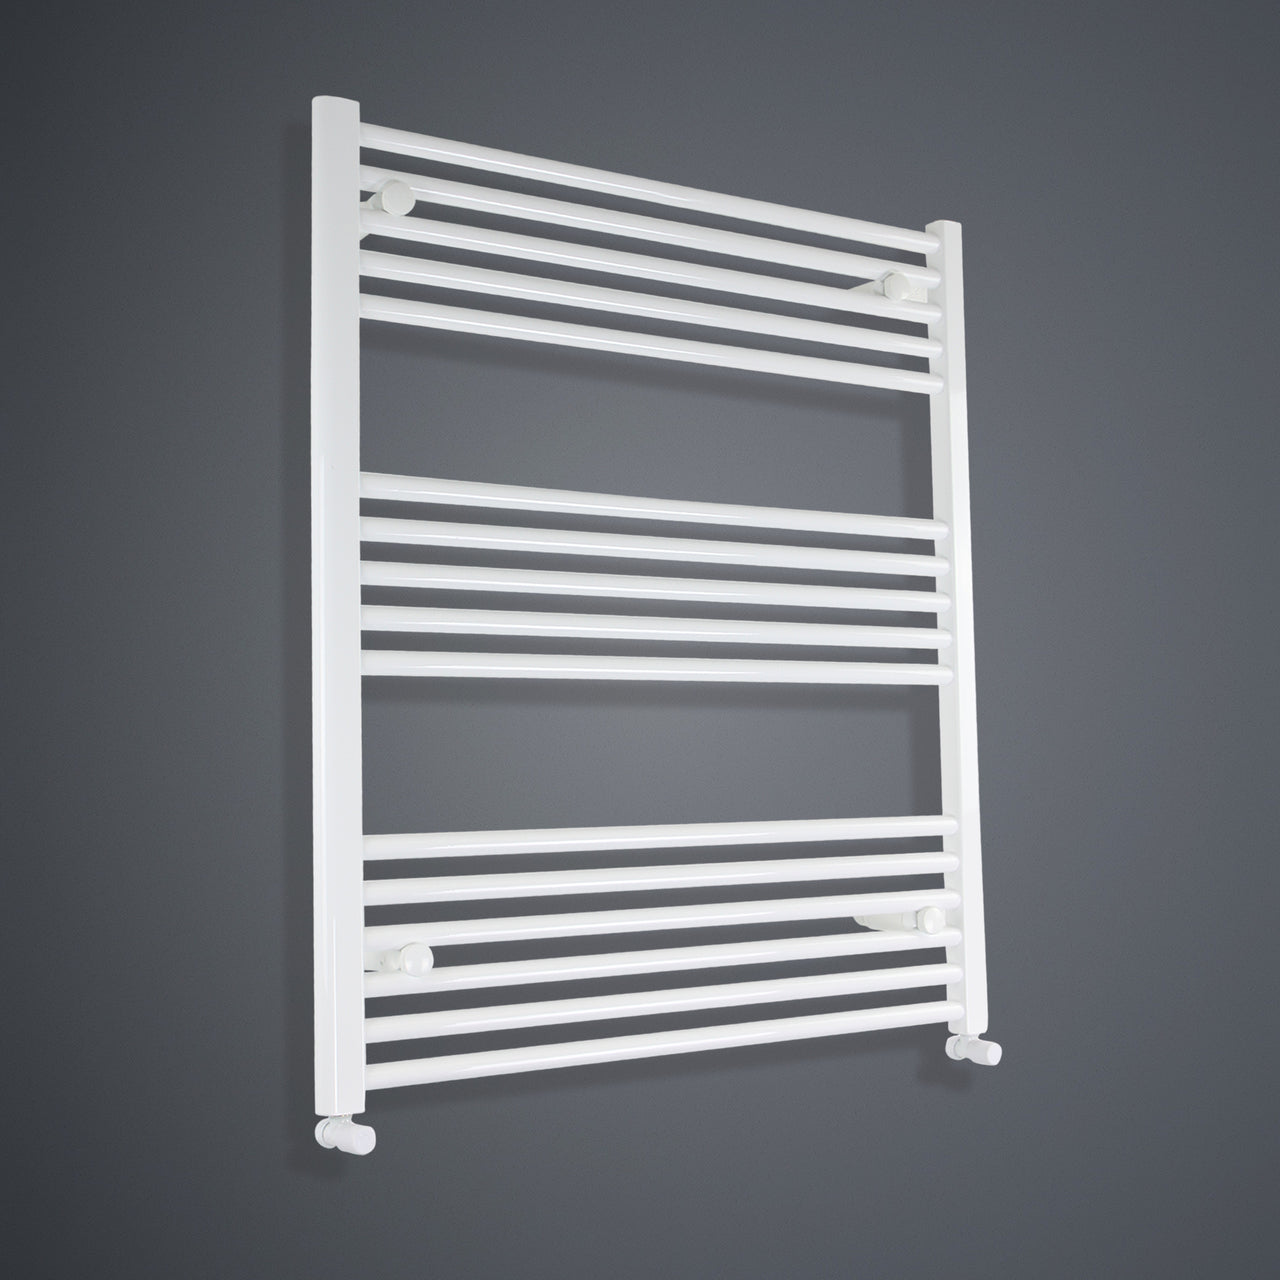 800mm Wide 900mm High Flat White Heated Towel Rail Radiator HTR,With Angled Valve